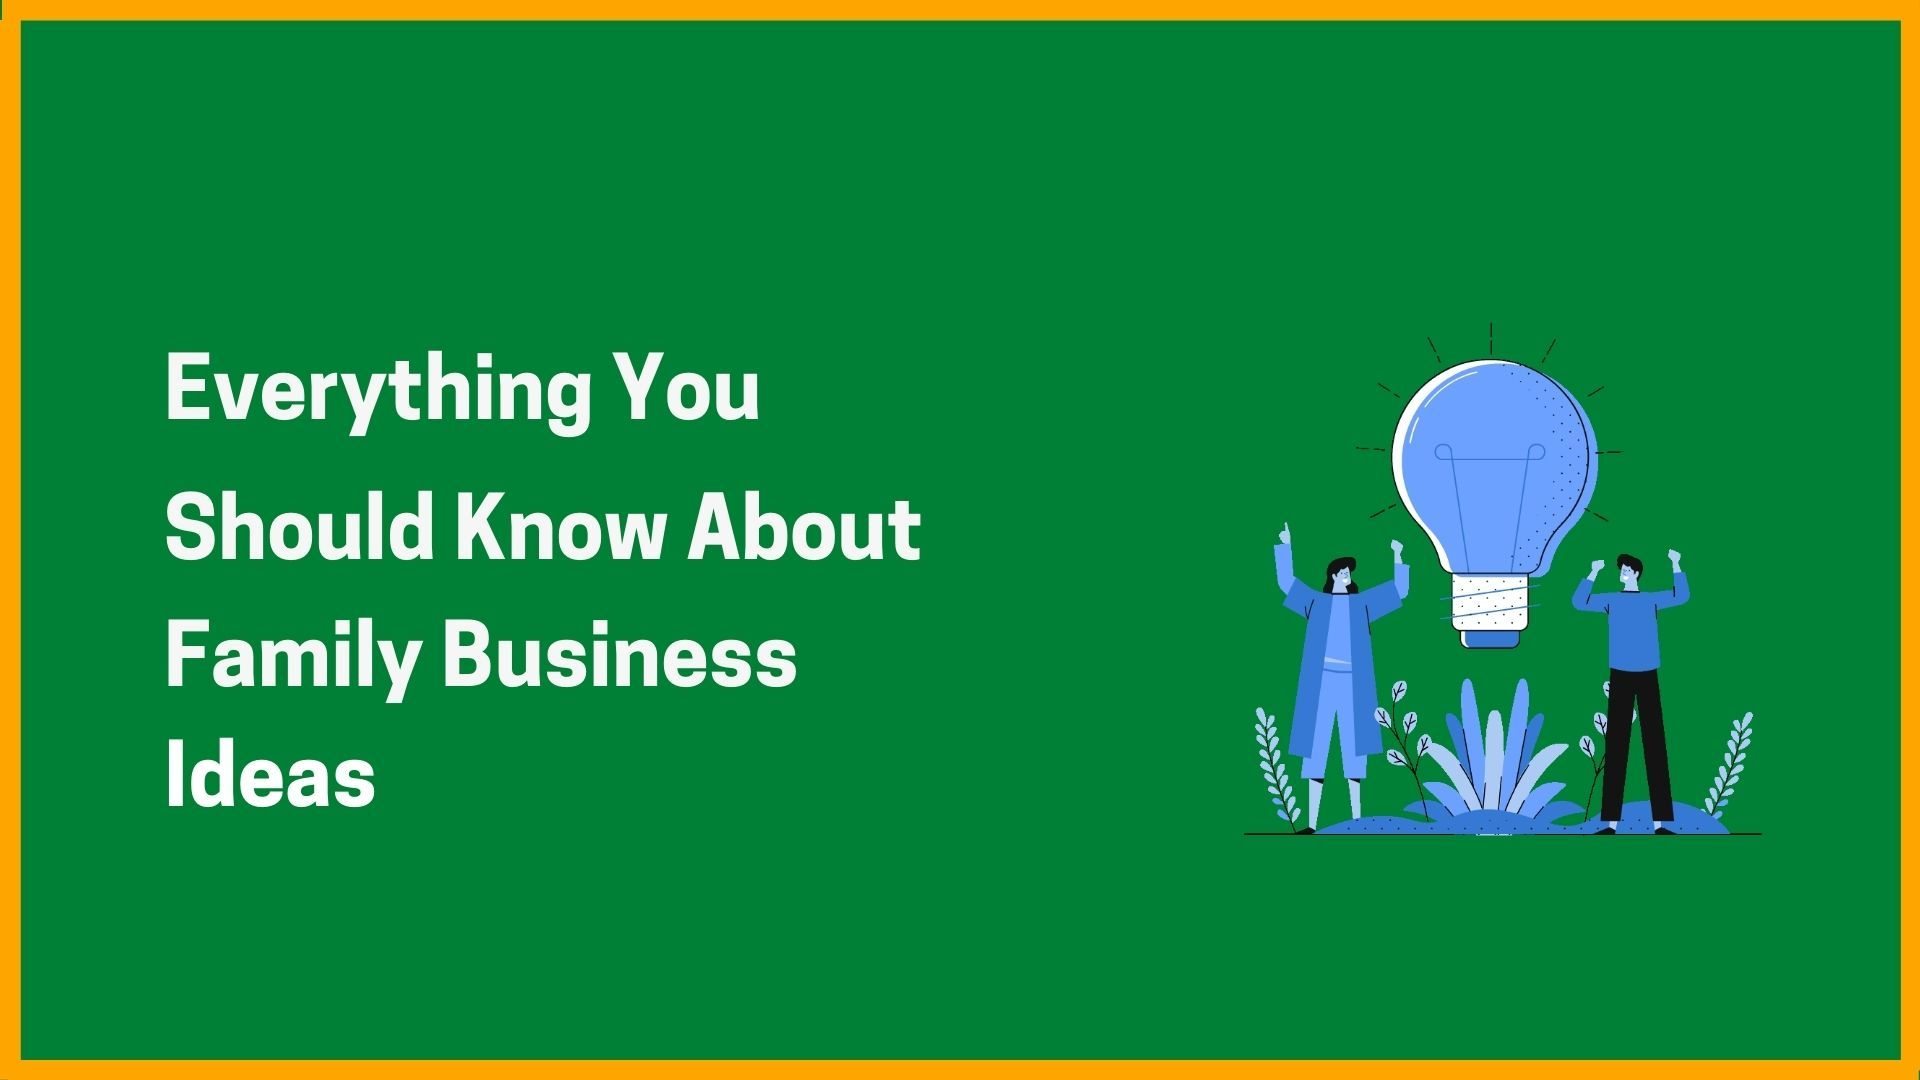 Everything You Should Know About Family Business Ideas